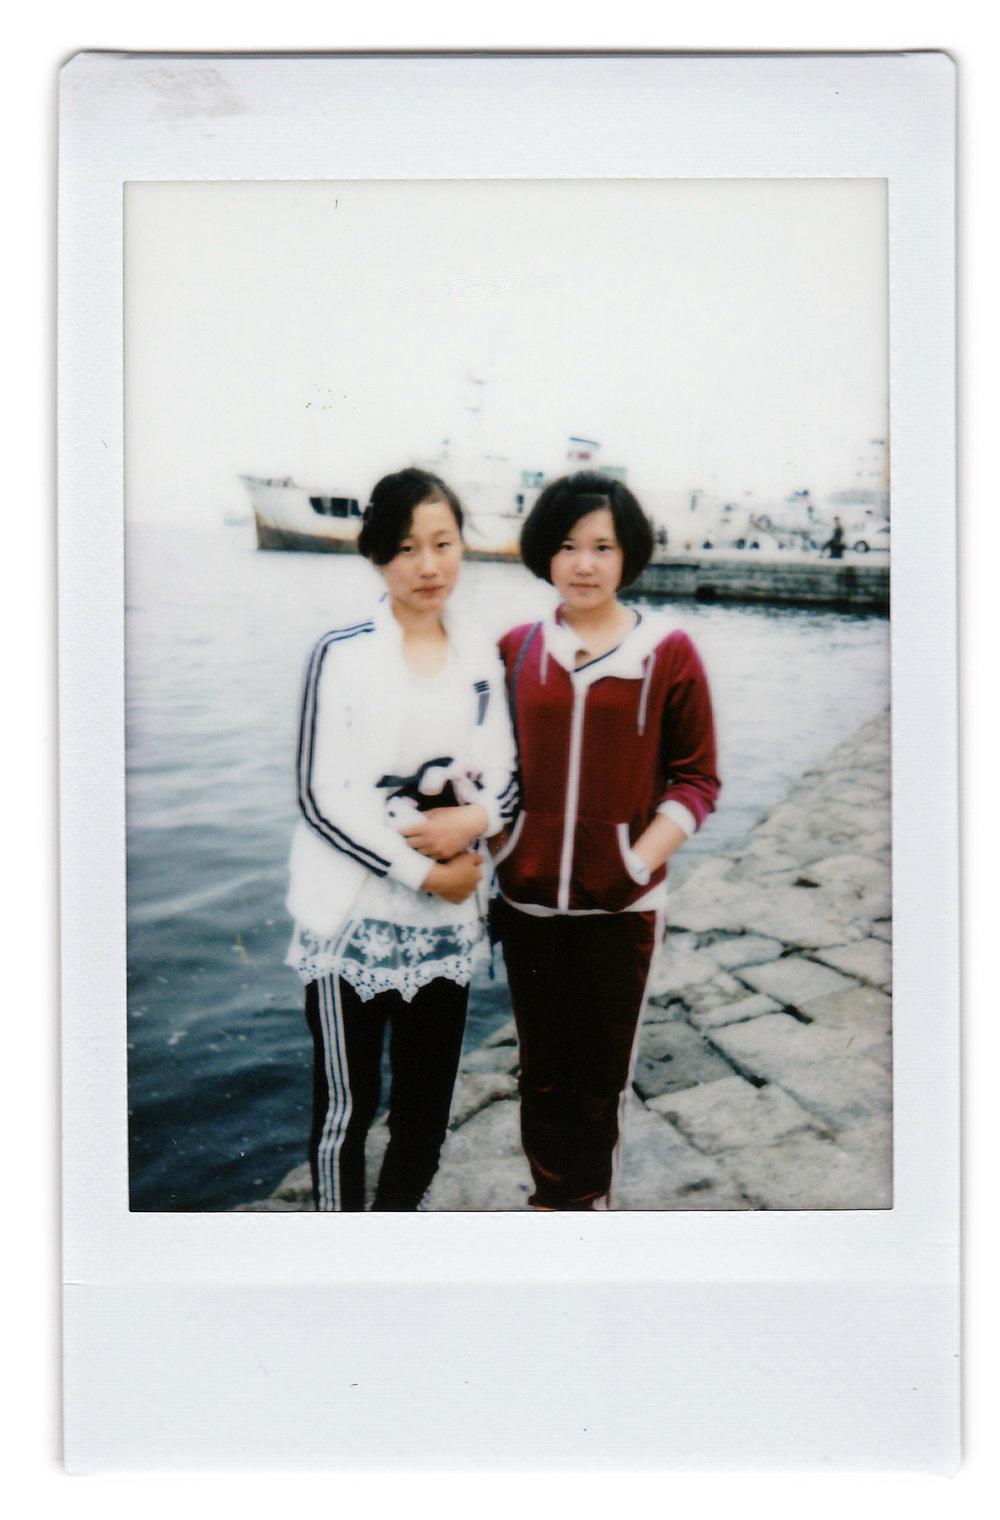 "In this June 21, 2016, photo made with an instant camera, Ri Nam Hae, left, and Kil Myong Kyong, both 16-years old, pose for a portrait at a pier in Wonsan, North Korea. When asked what's important to them, North Koreans might talk about working hard, or doing well at sports, or having a big family, but leader Kim Jong Un is never far from the conversation. Ri wants to be a journalist and her motto is to ""spread the country's propaganda to the world. "" Kil's motto: ""I want to uphold Marshal Kim Jong Un and North Korea with my rifle."" (AP Photo/Wong Maye-E)"